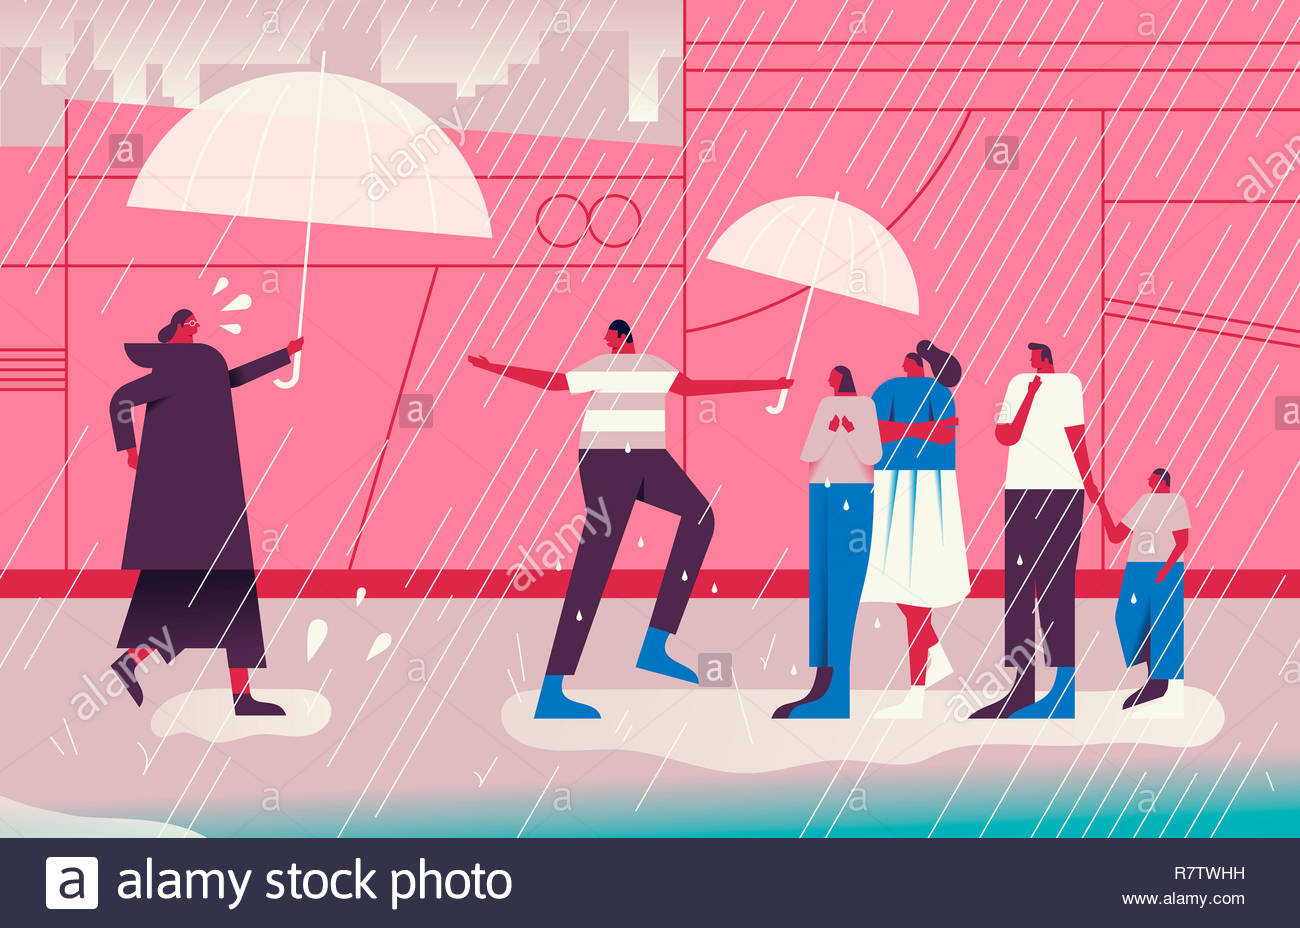 Man and woman bringing umbrellas to people out in the rain - Stock Image